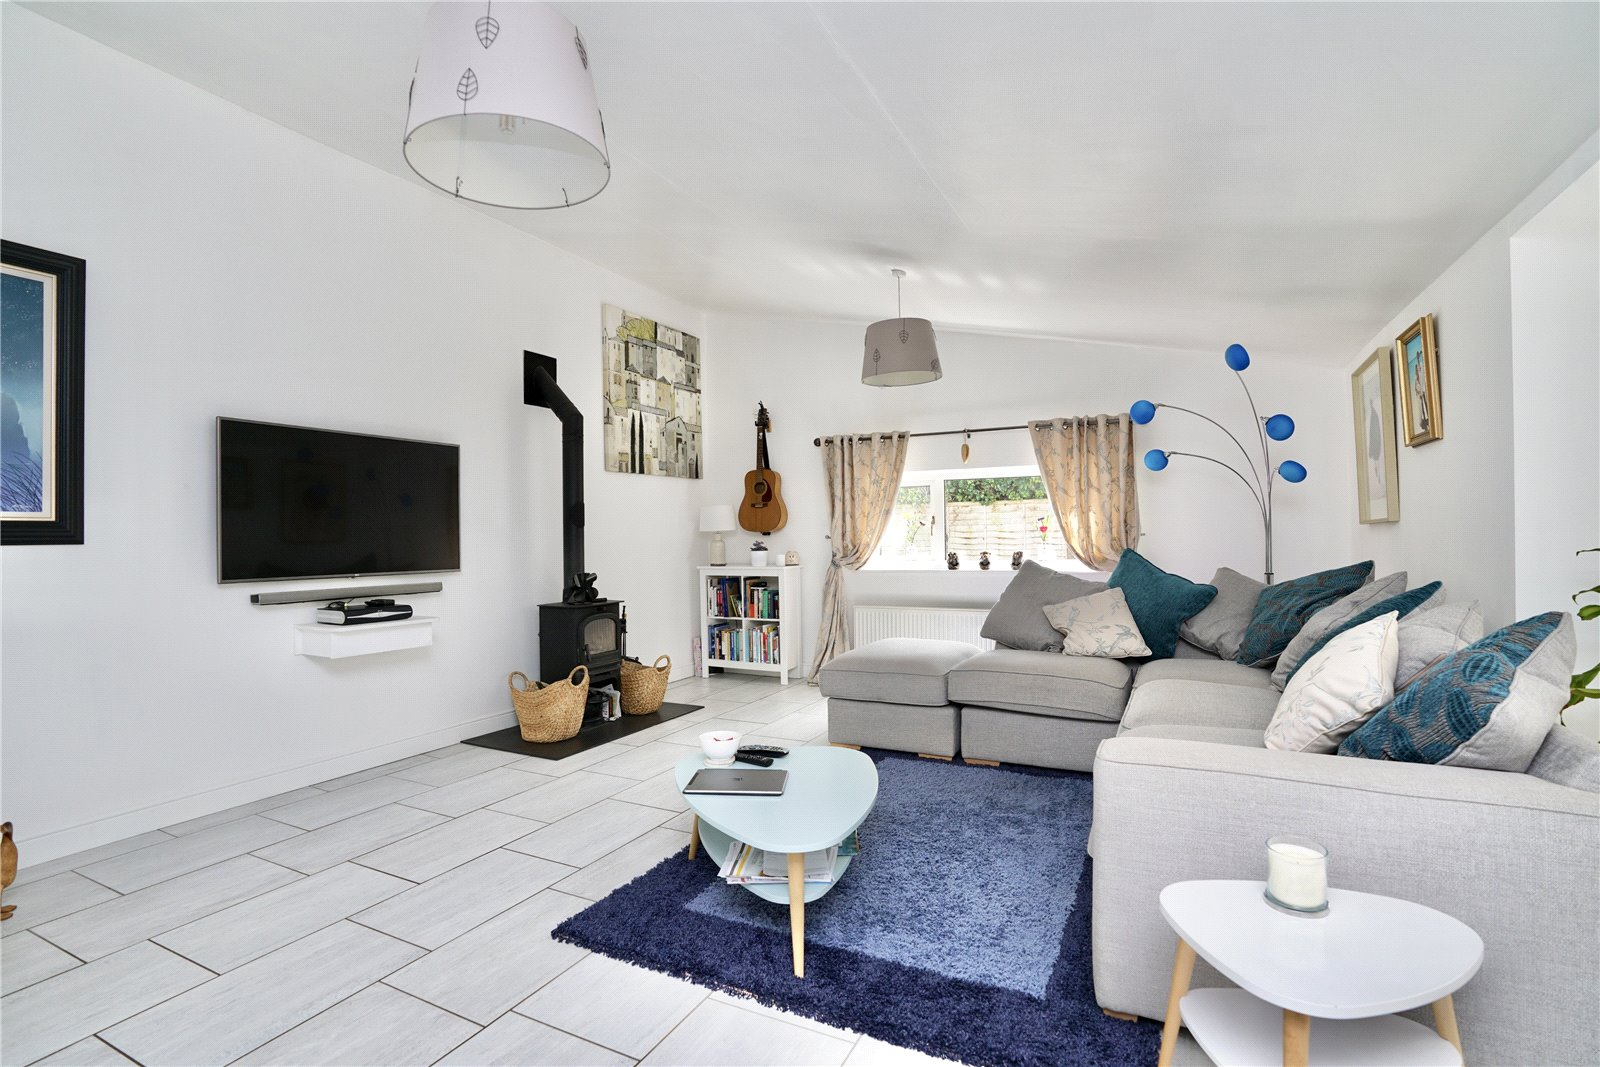 3 bed bungalow for sale in Wyton, PE28 2AL 0